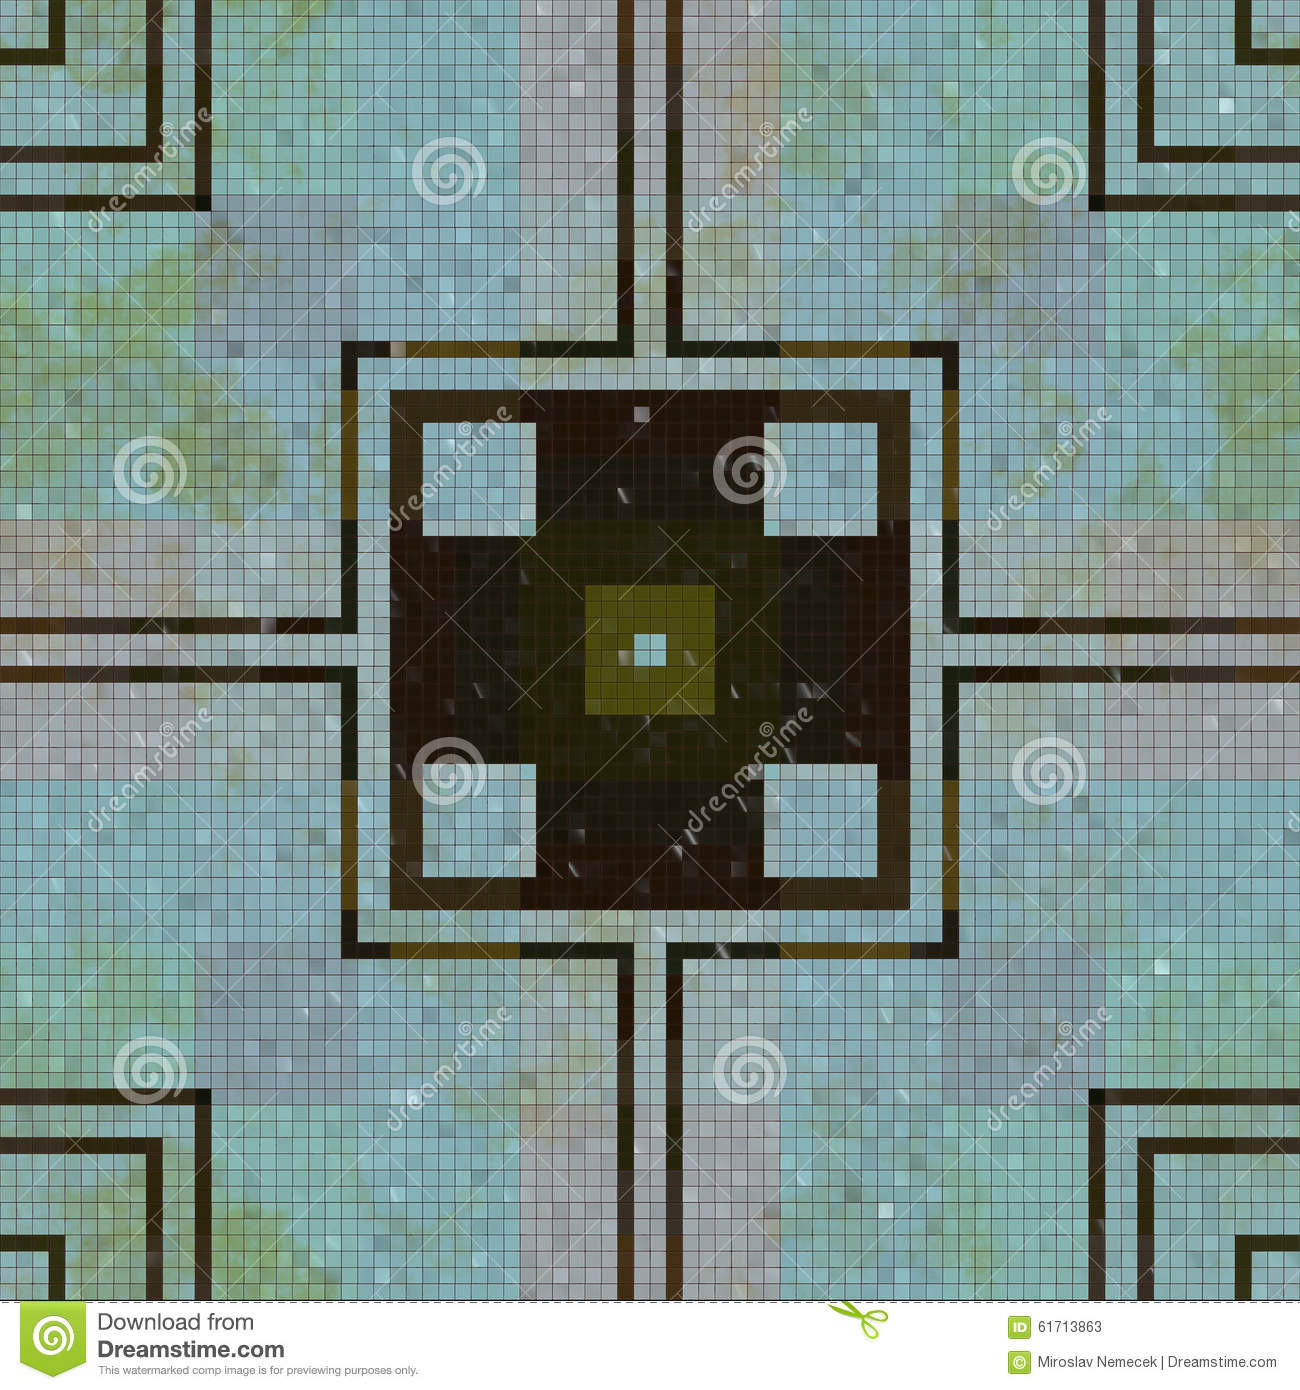 generated seamless tile background - photo #47